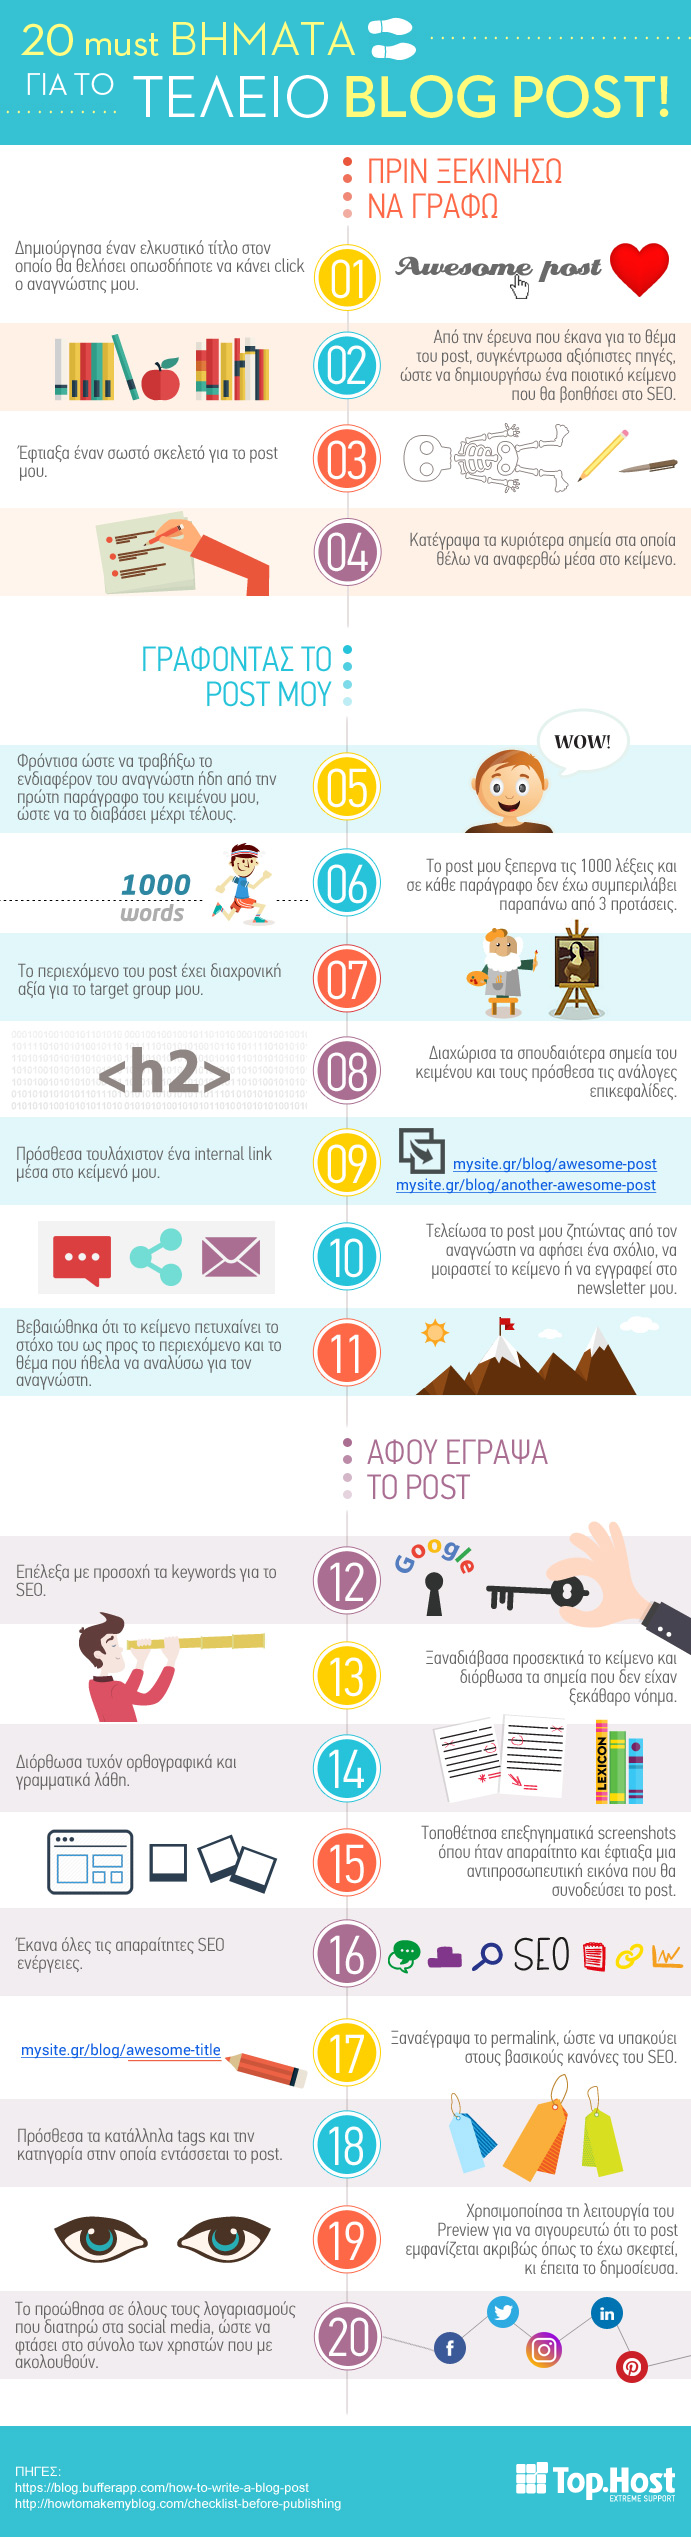 blogpost_infographic_tophost